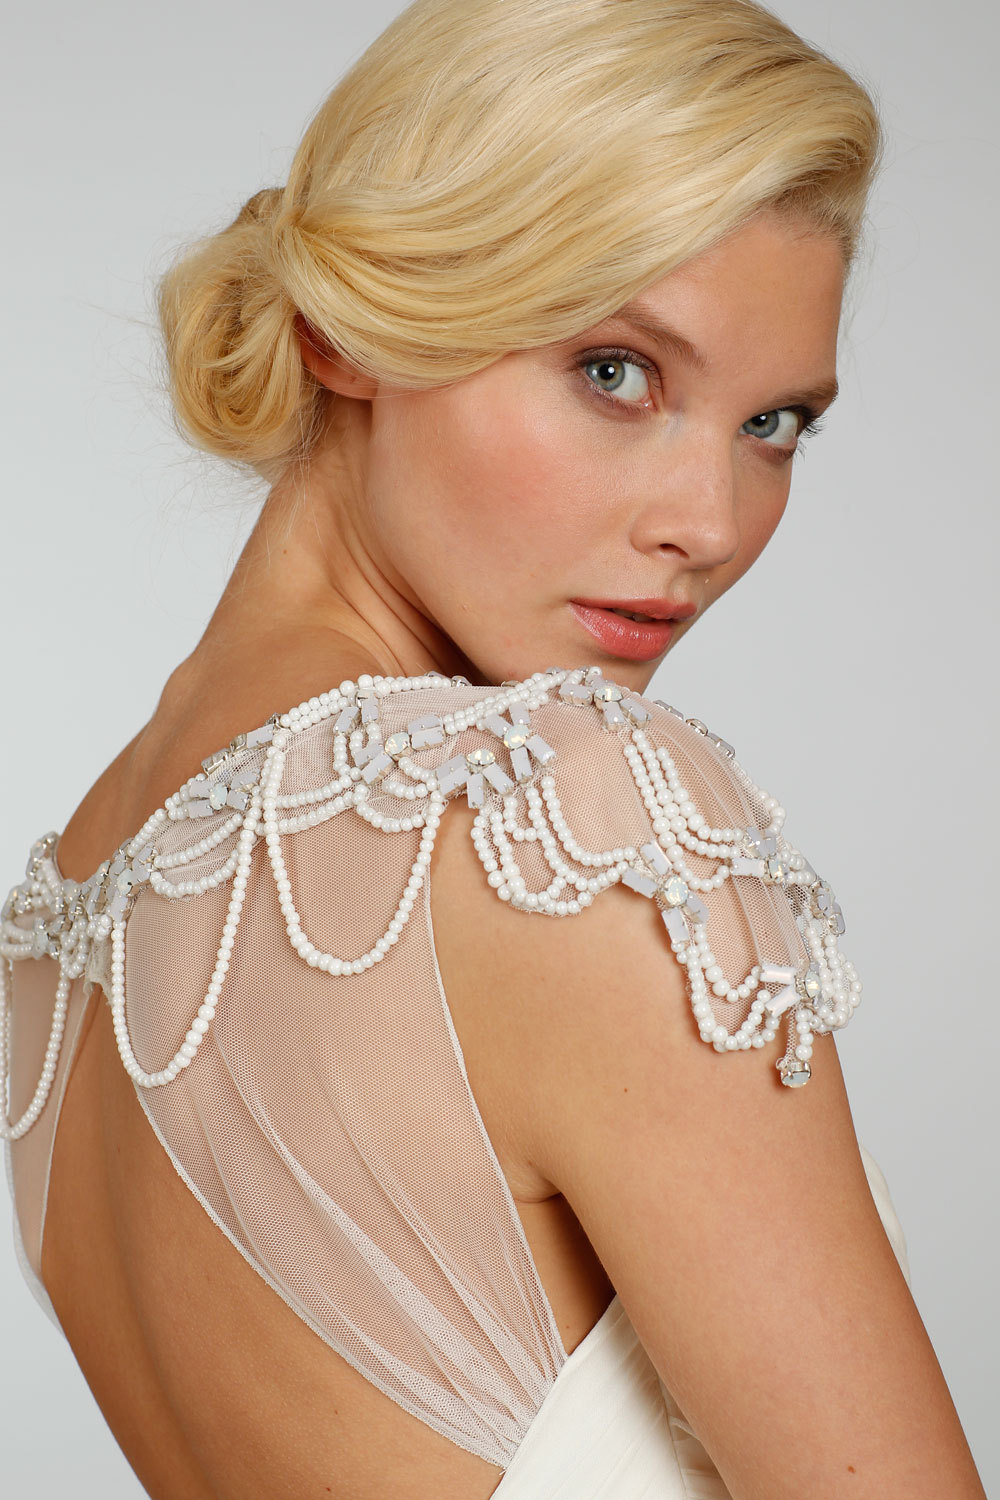 Hayley-paige-wedding-dress-detail-spring-2013-bridal-gowns.full